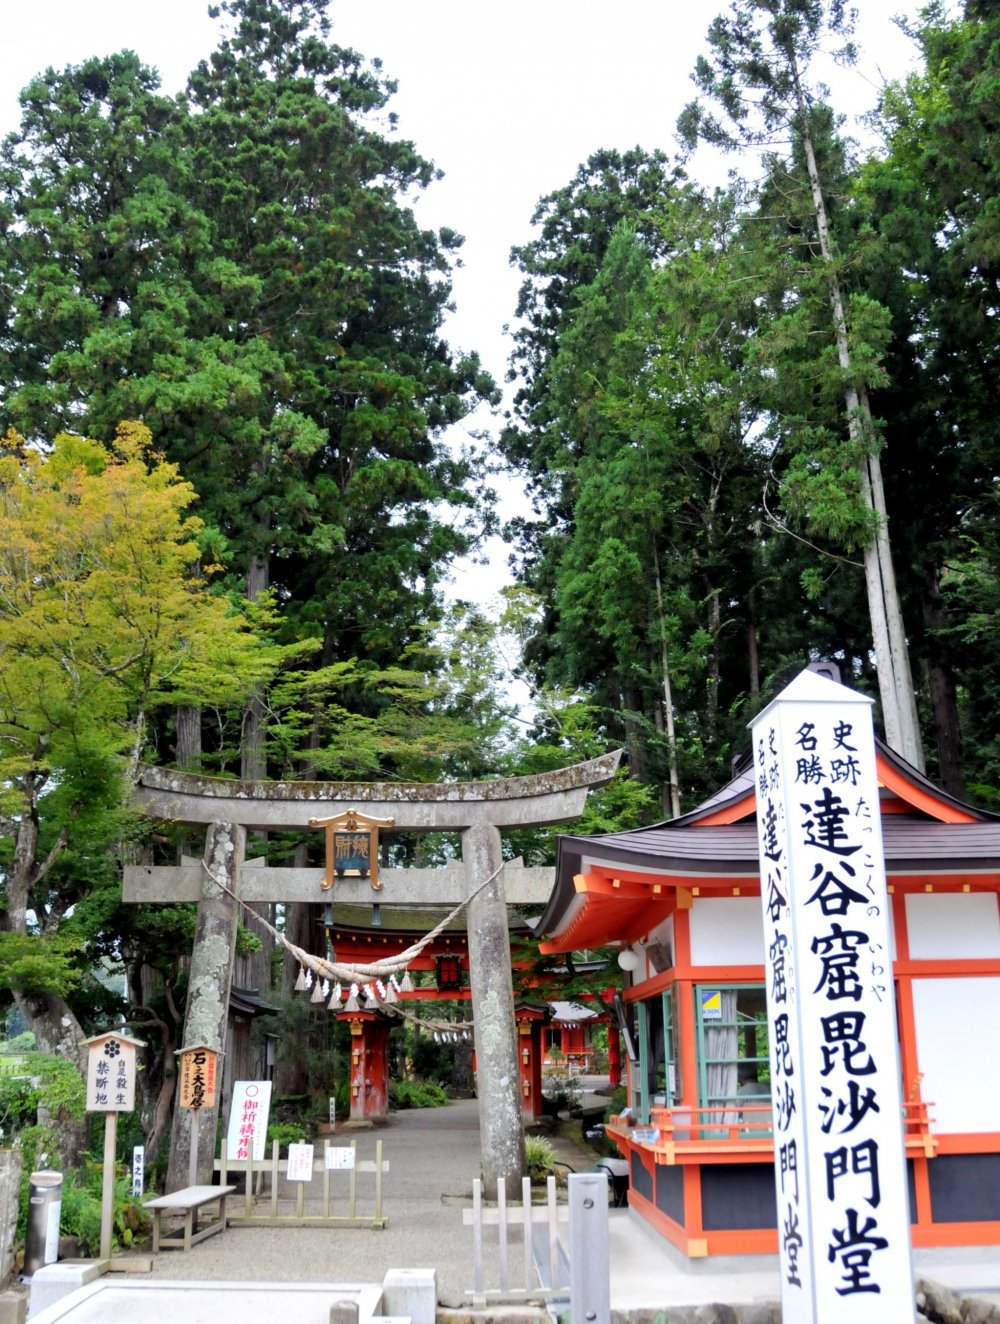 Visitors pass through three torii gates - the first dates back to the Edo Period and is made of locally quarried stone. The others are bright vermilion-painted wood.